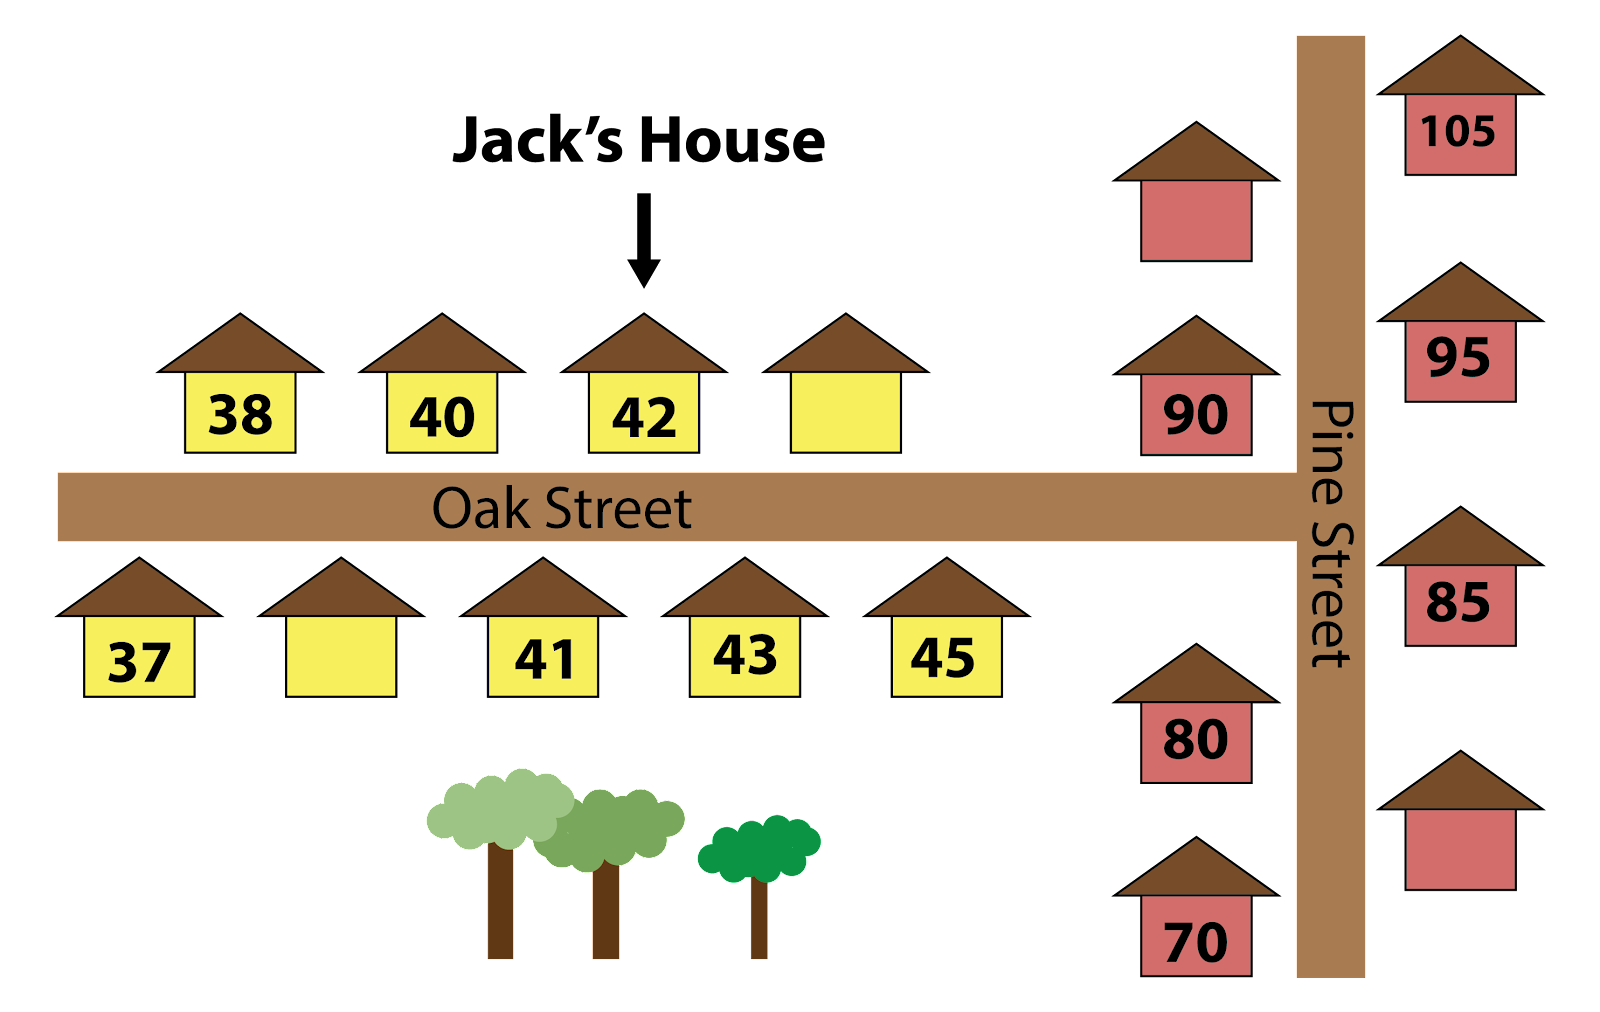 The map shows that Oak Street intersects Pine Street. The houses on Oak Street are yellow. The house numbers on one side of the street are 38, 40, 42, and blank. Jack's house is number 42. The house numbers on the other side of the street are 37, blank, 41, 43, and 45. The houses on Pine street are red. The house numbers on one side of the street are 70, 80, 90, and blank. The house numbers on the other side are blank, 85, 95, 105.